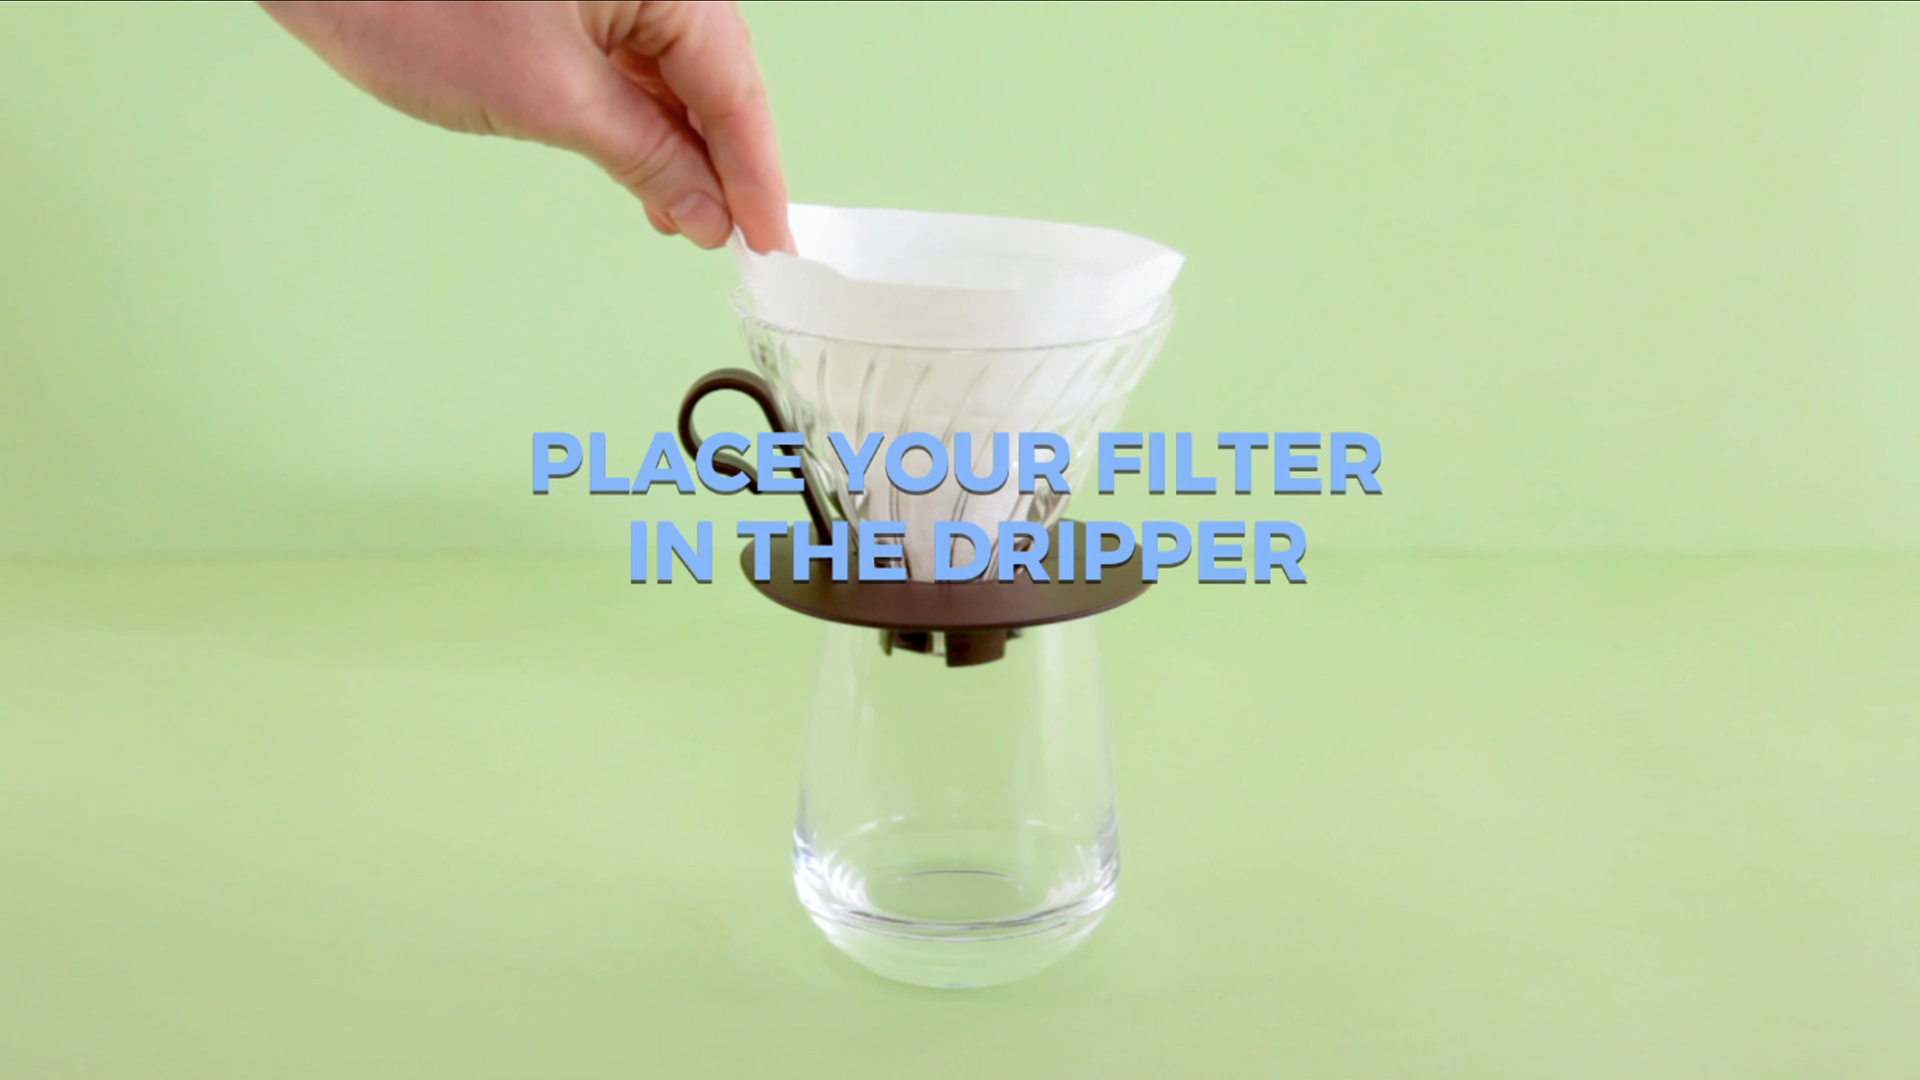 Place your filter inside the dripper and rinse with the freshly boiled water